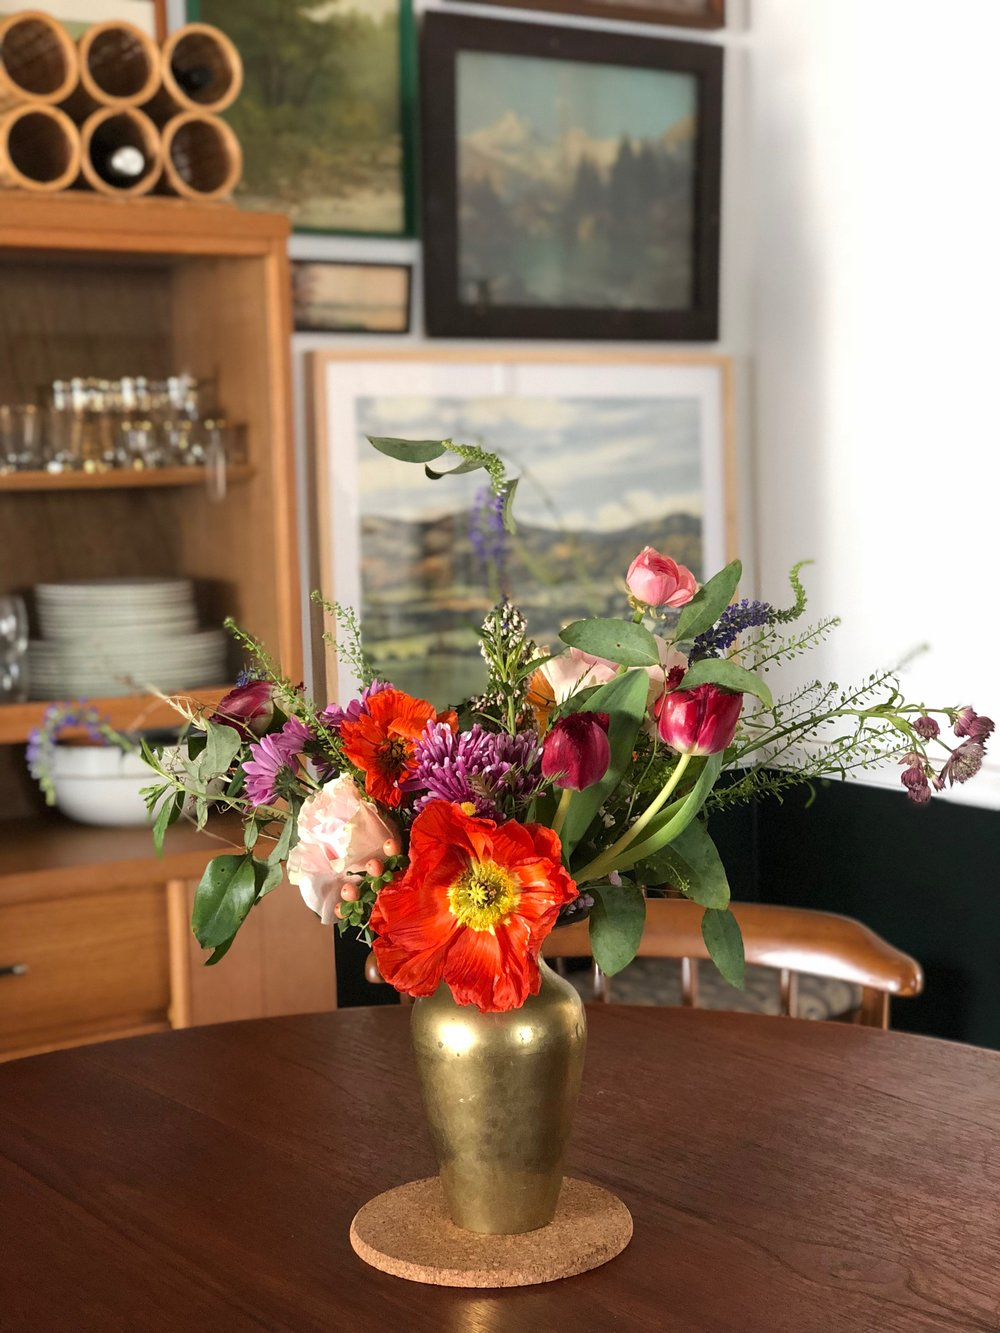 I got some flowers at  Ever Something  in Kendall Whittier last weekend. And they had this gorgeous vintage brass vase to choose as a vessel! I couldn't believe my luck!